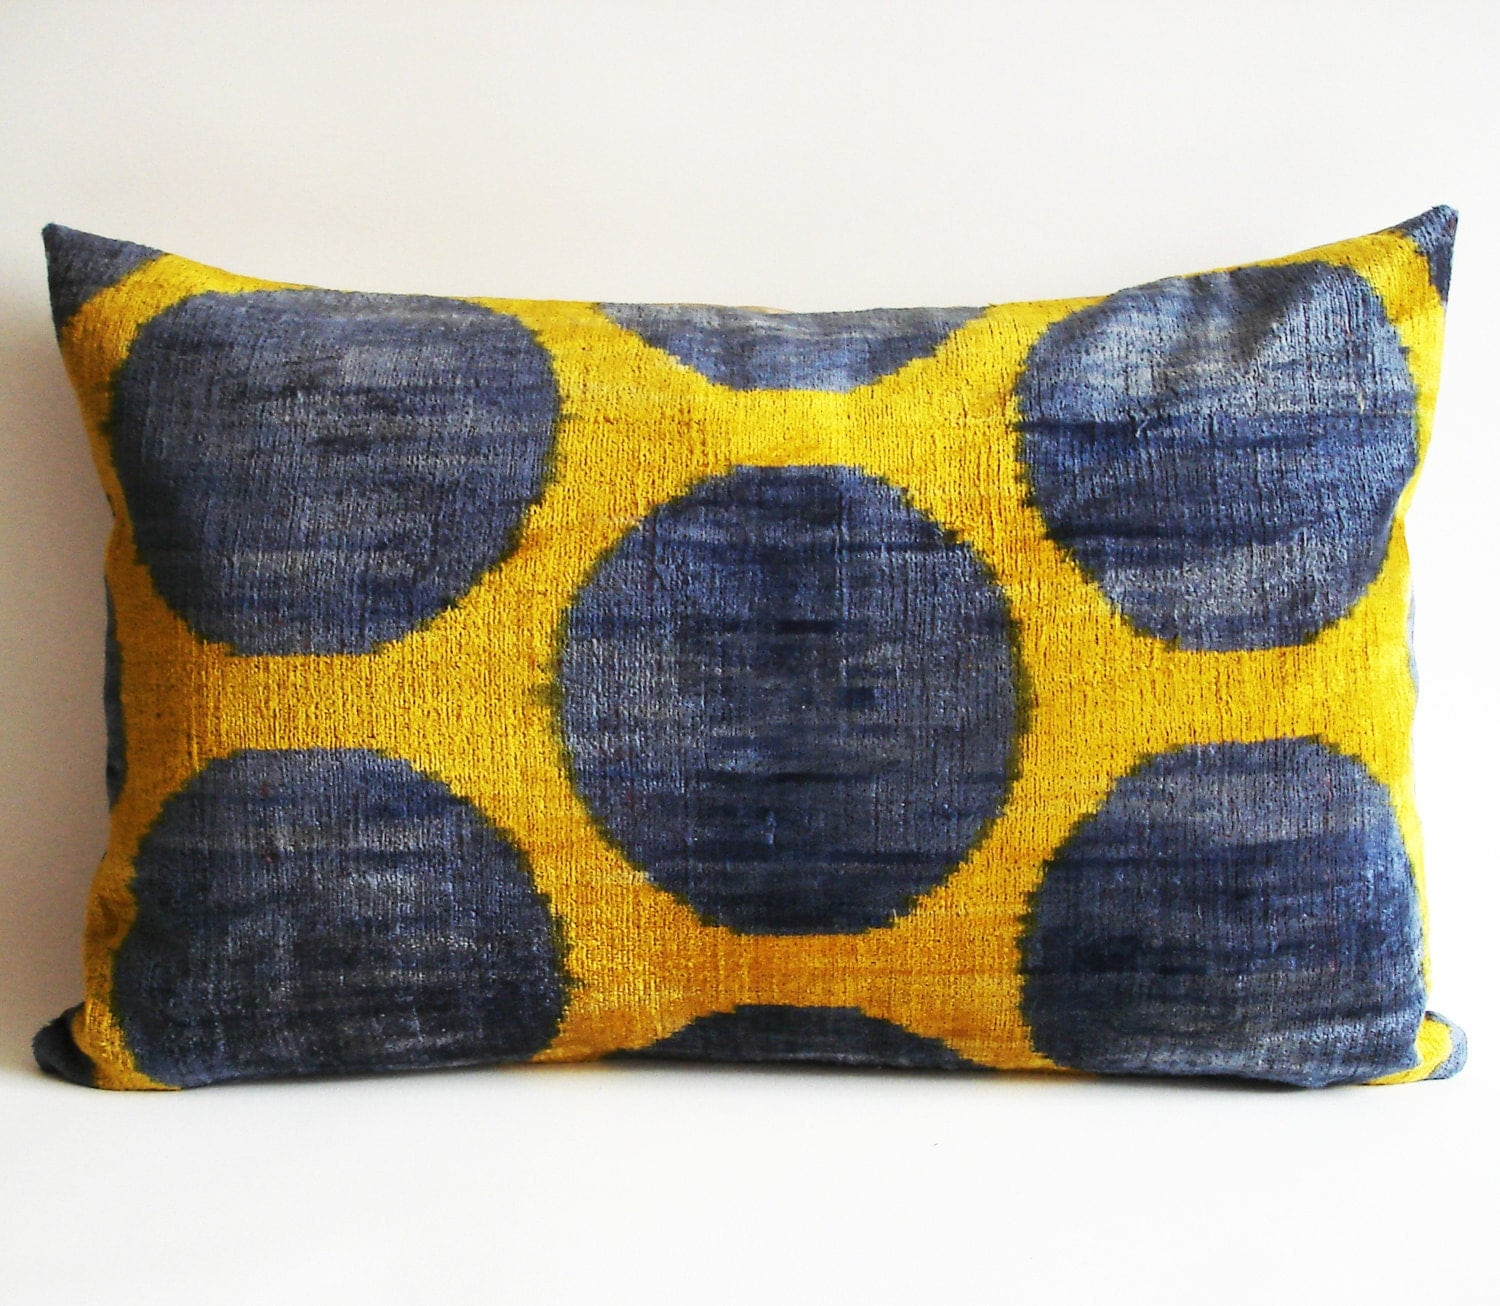 SALE - Soft Hand Woven - Silk Velvet Ikat Pillow Cover - 15x23 inch - Blue Yellow Green Color